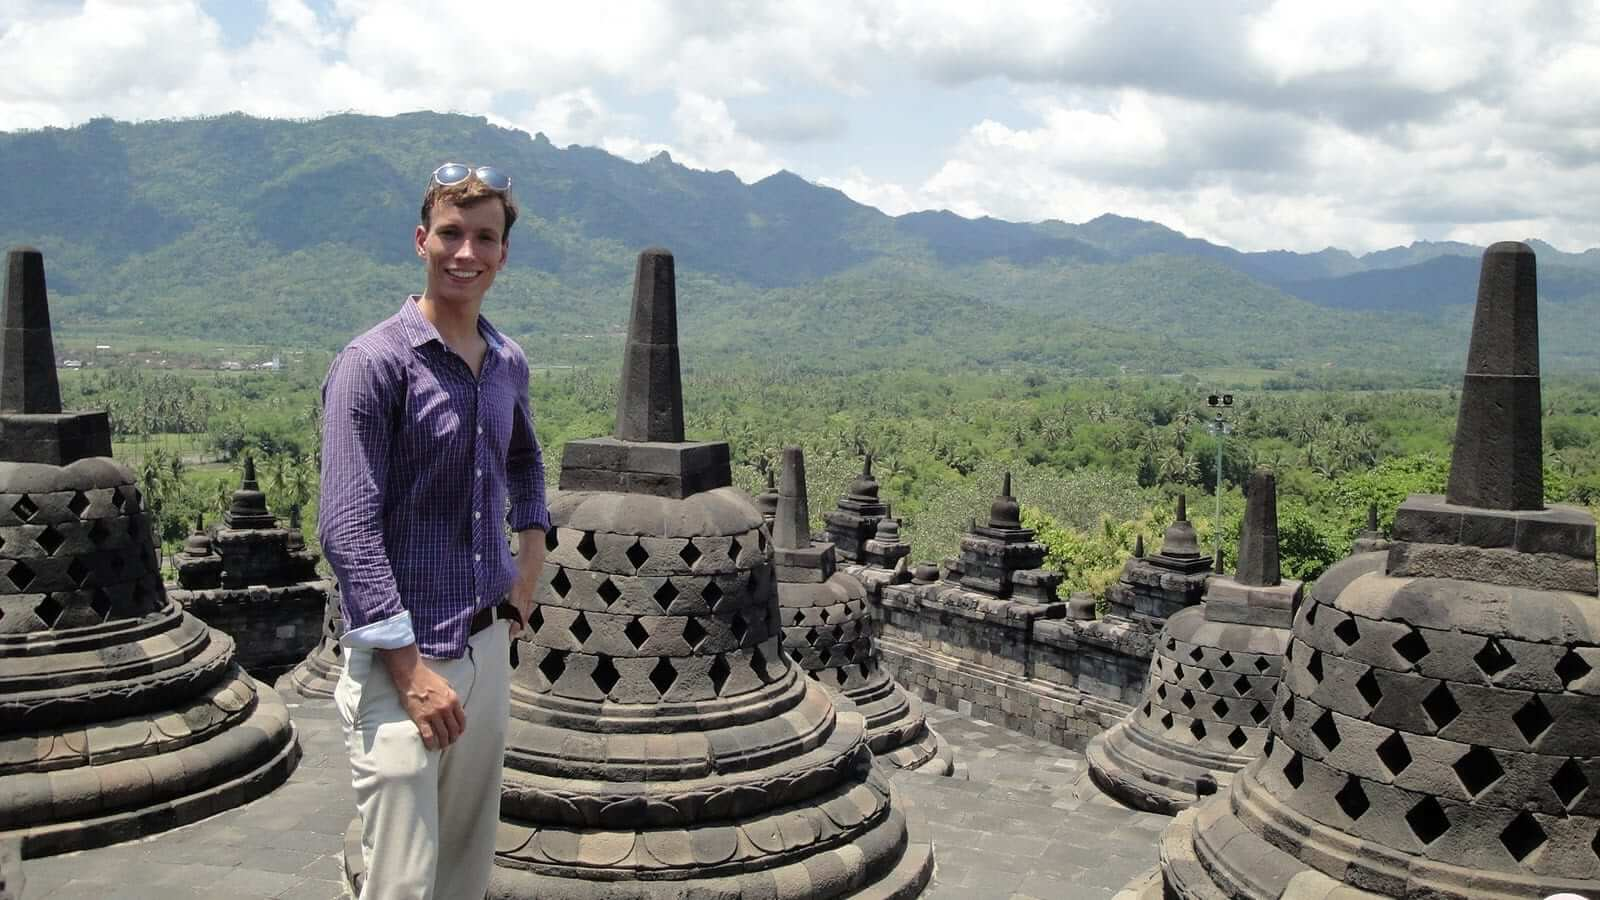 Experiences and New Perspectives – Studying in Bali